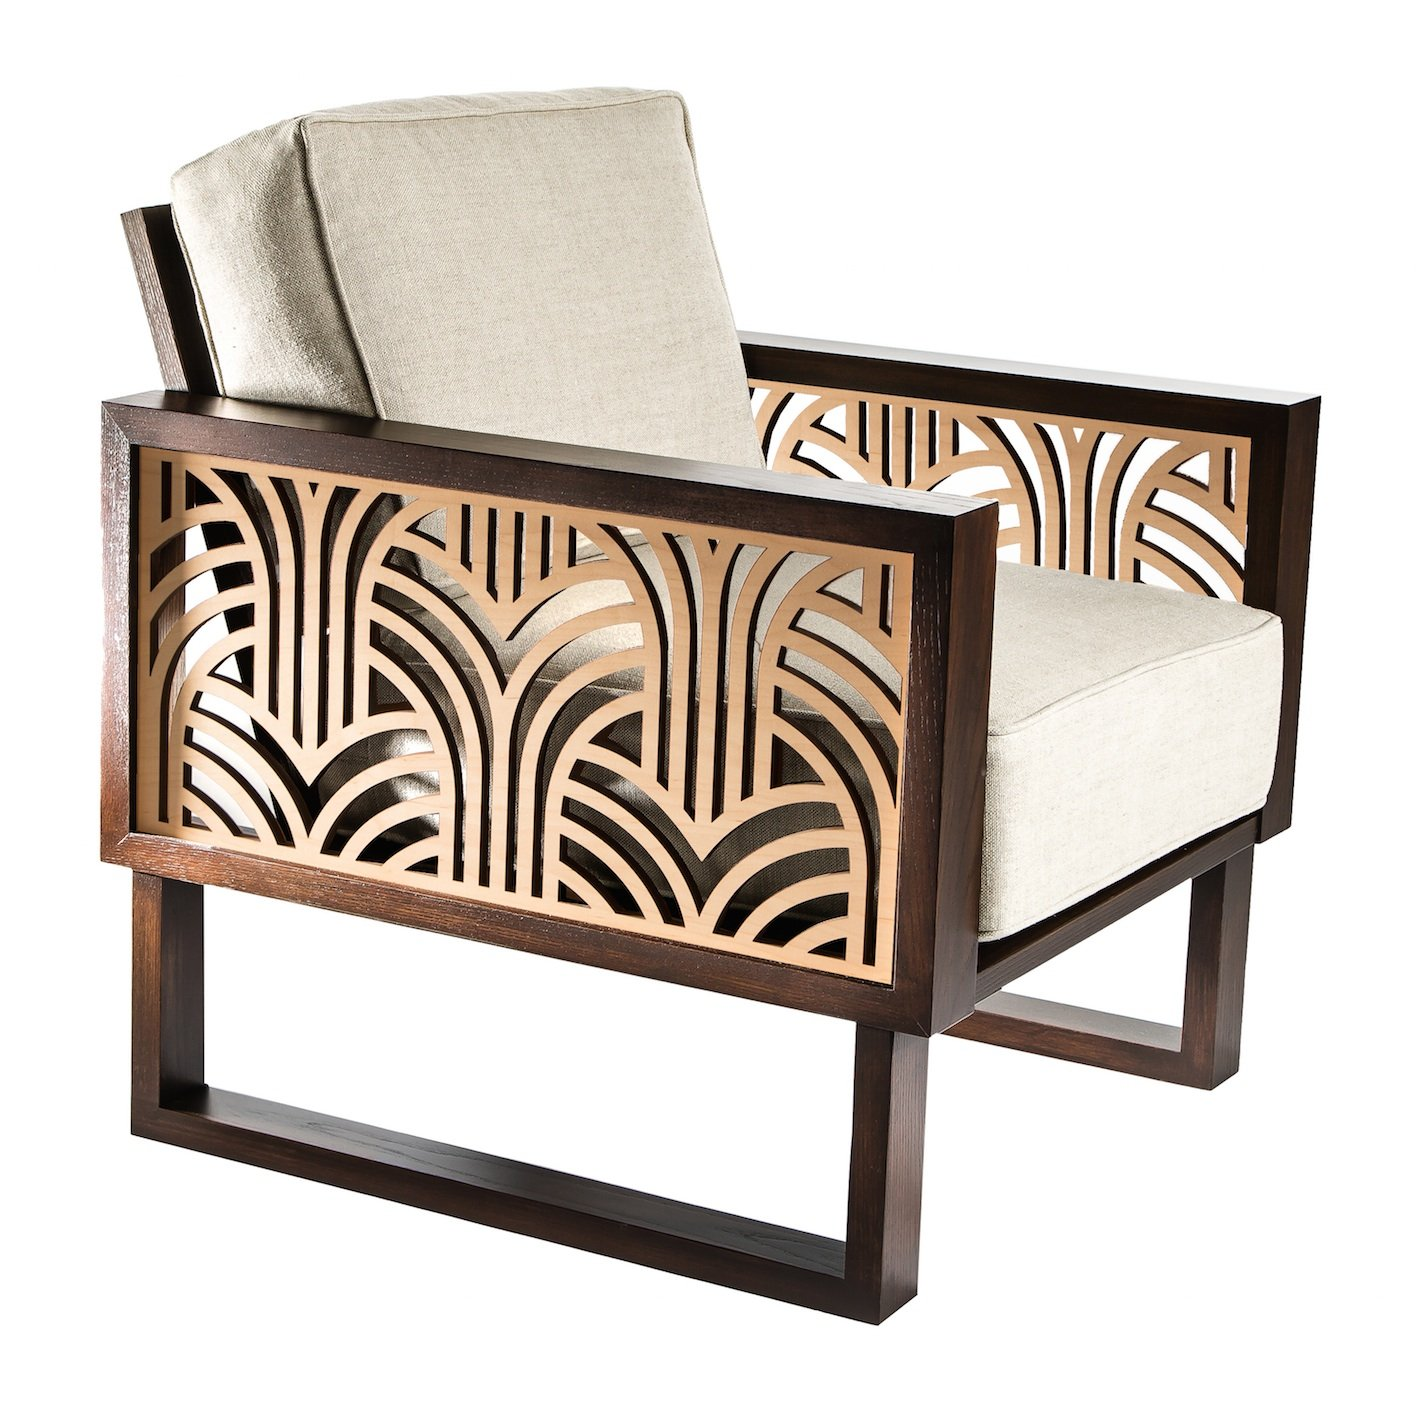 Art Deco Lounge Chair Twist Modern